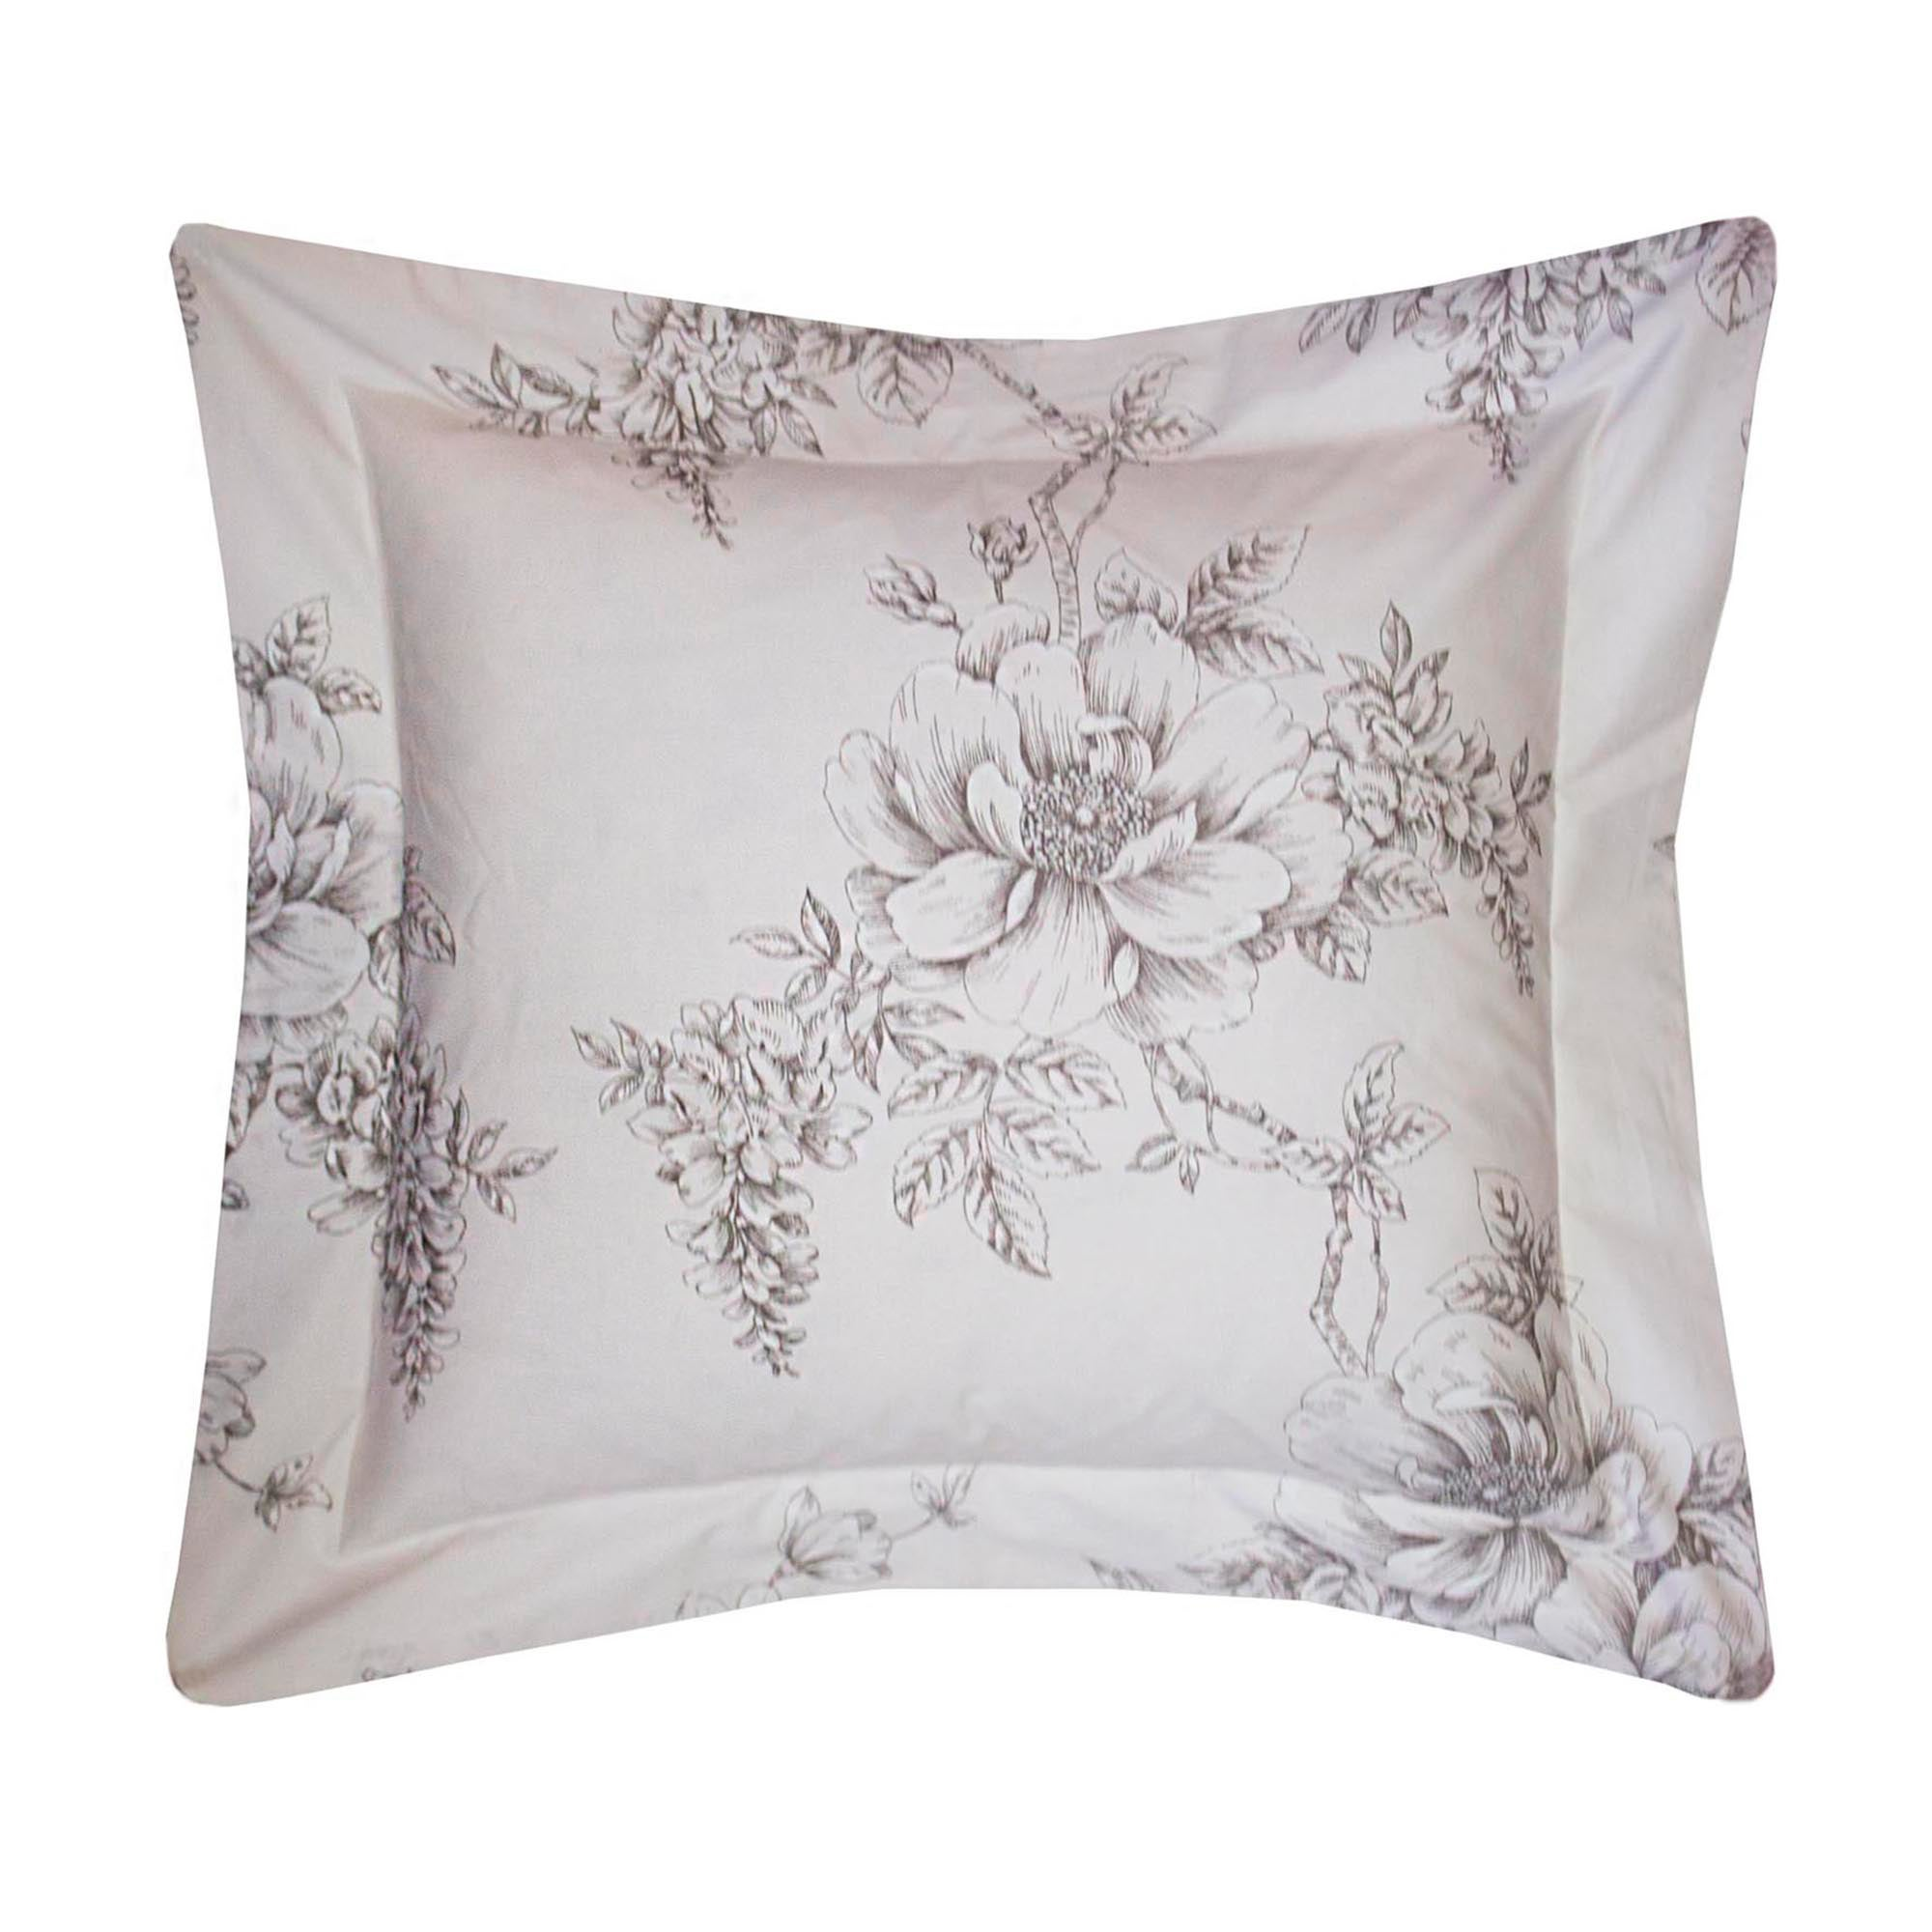 Image of Holly Willoughby Jenna Pink Cushion Pink